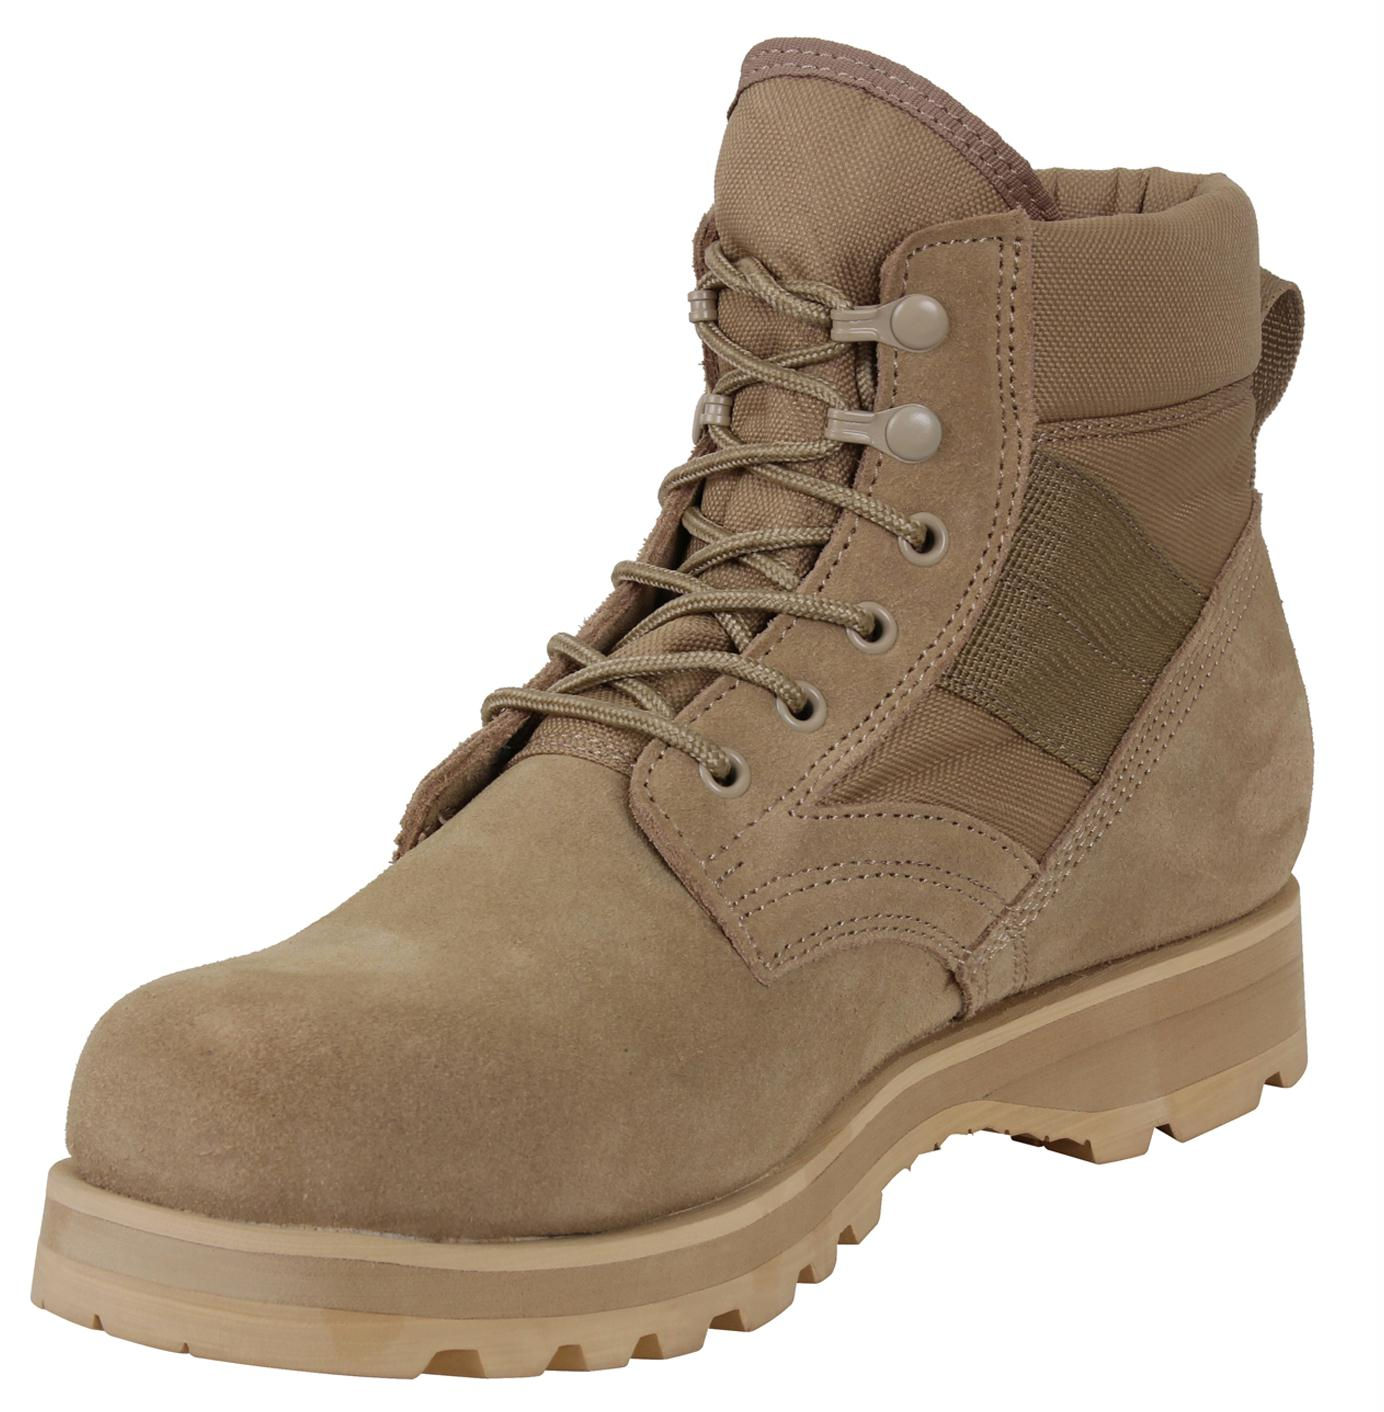 Rothco Military Combat Work Boot